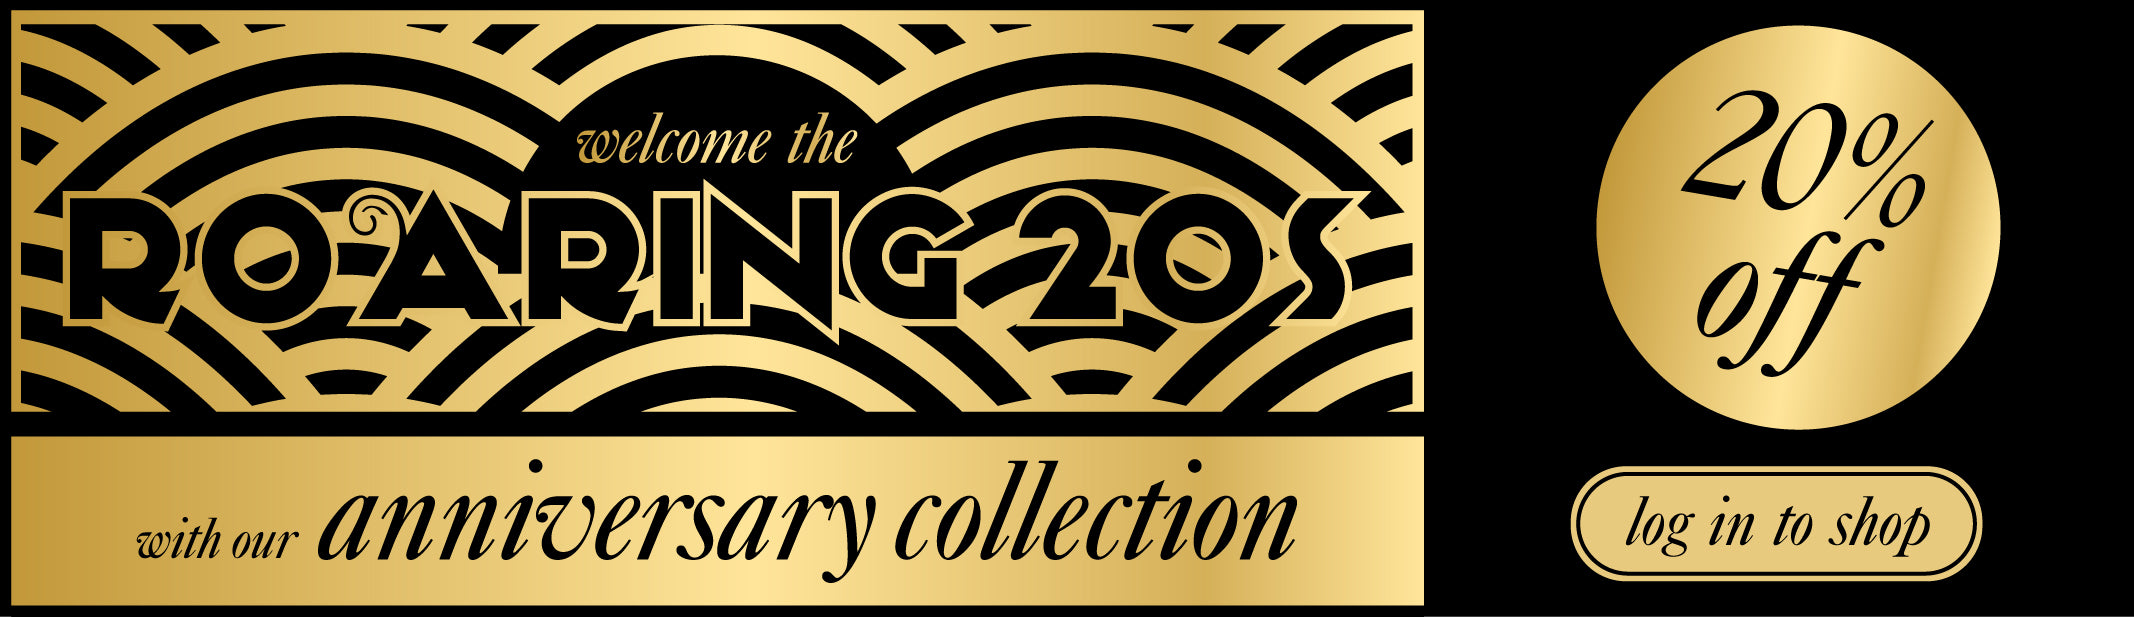 20% off Anniversary collection until 01/01/2020